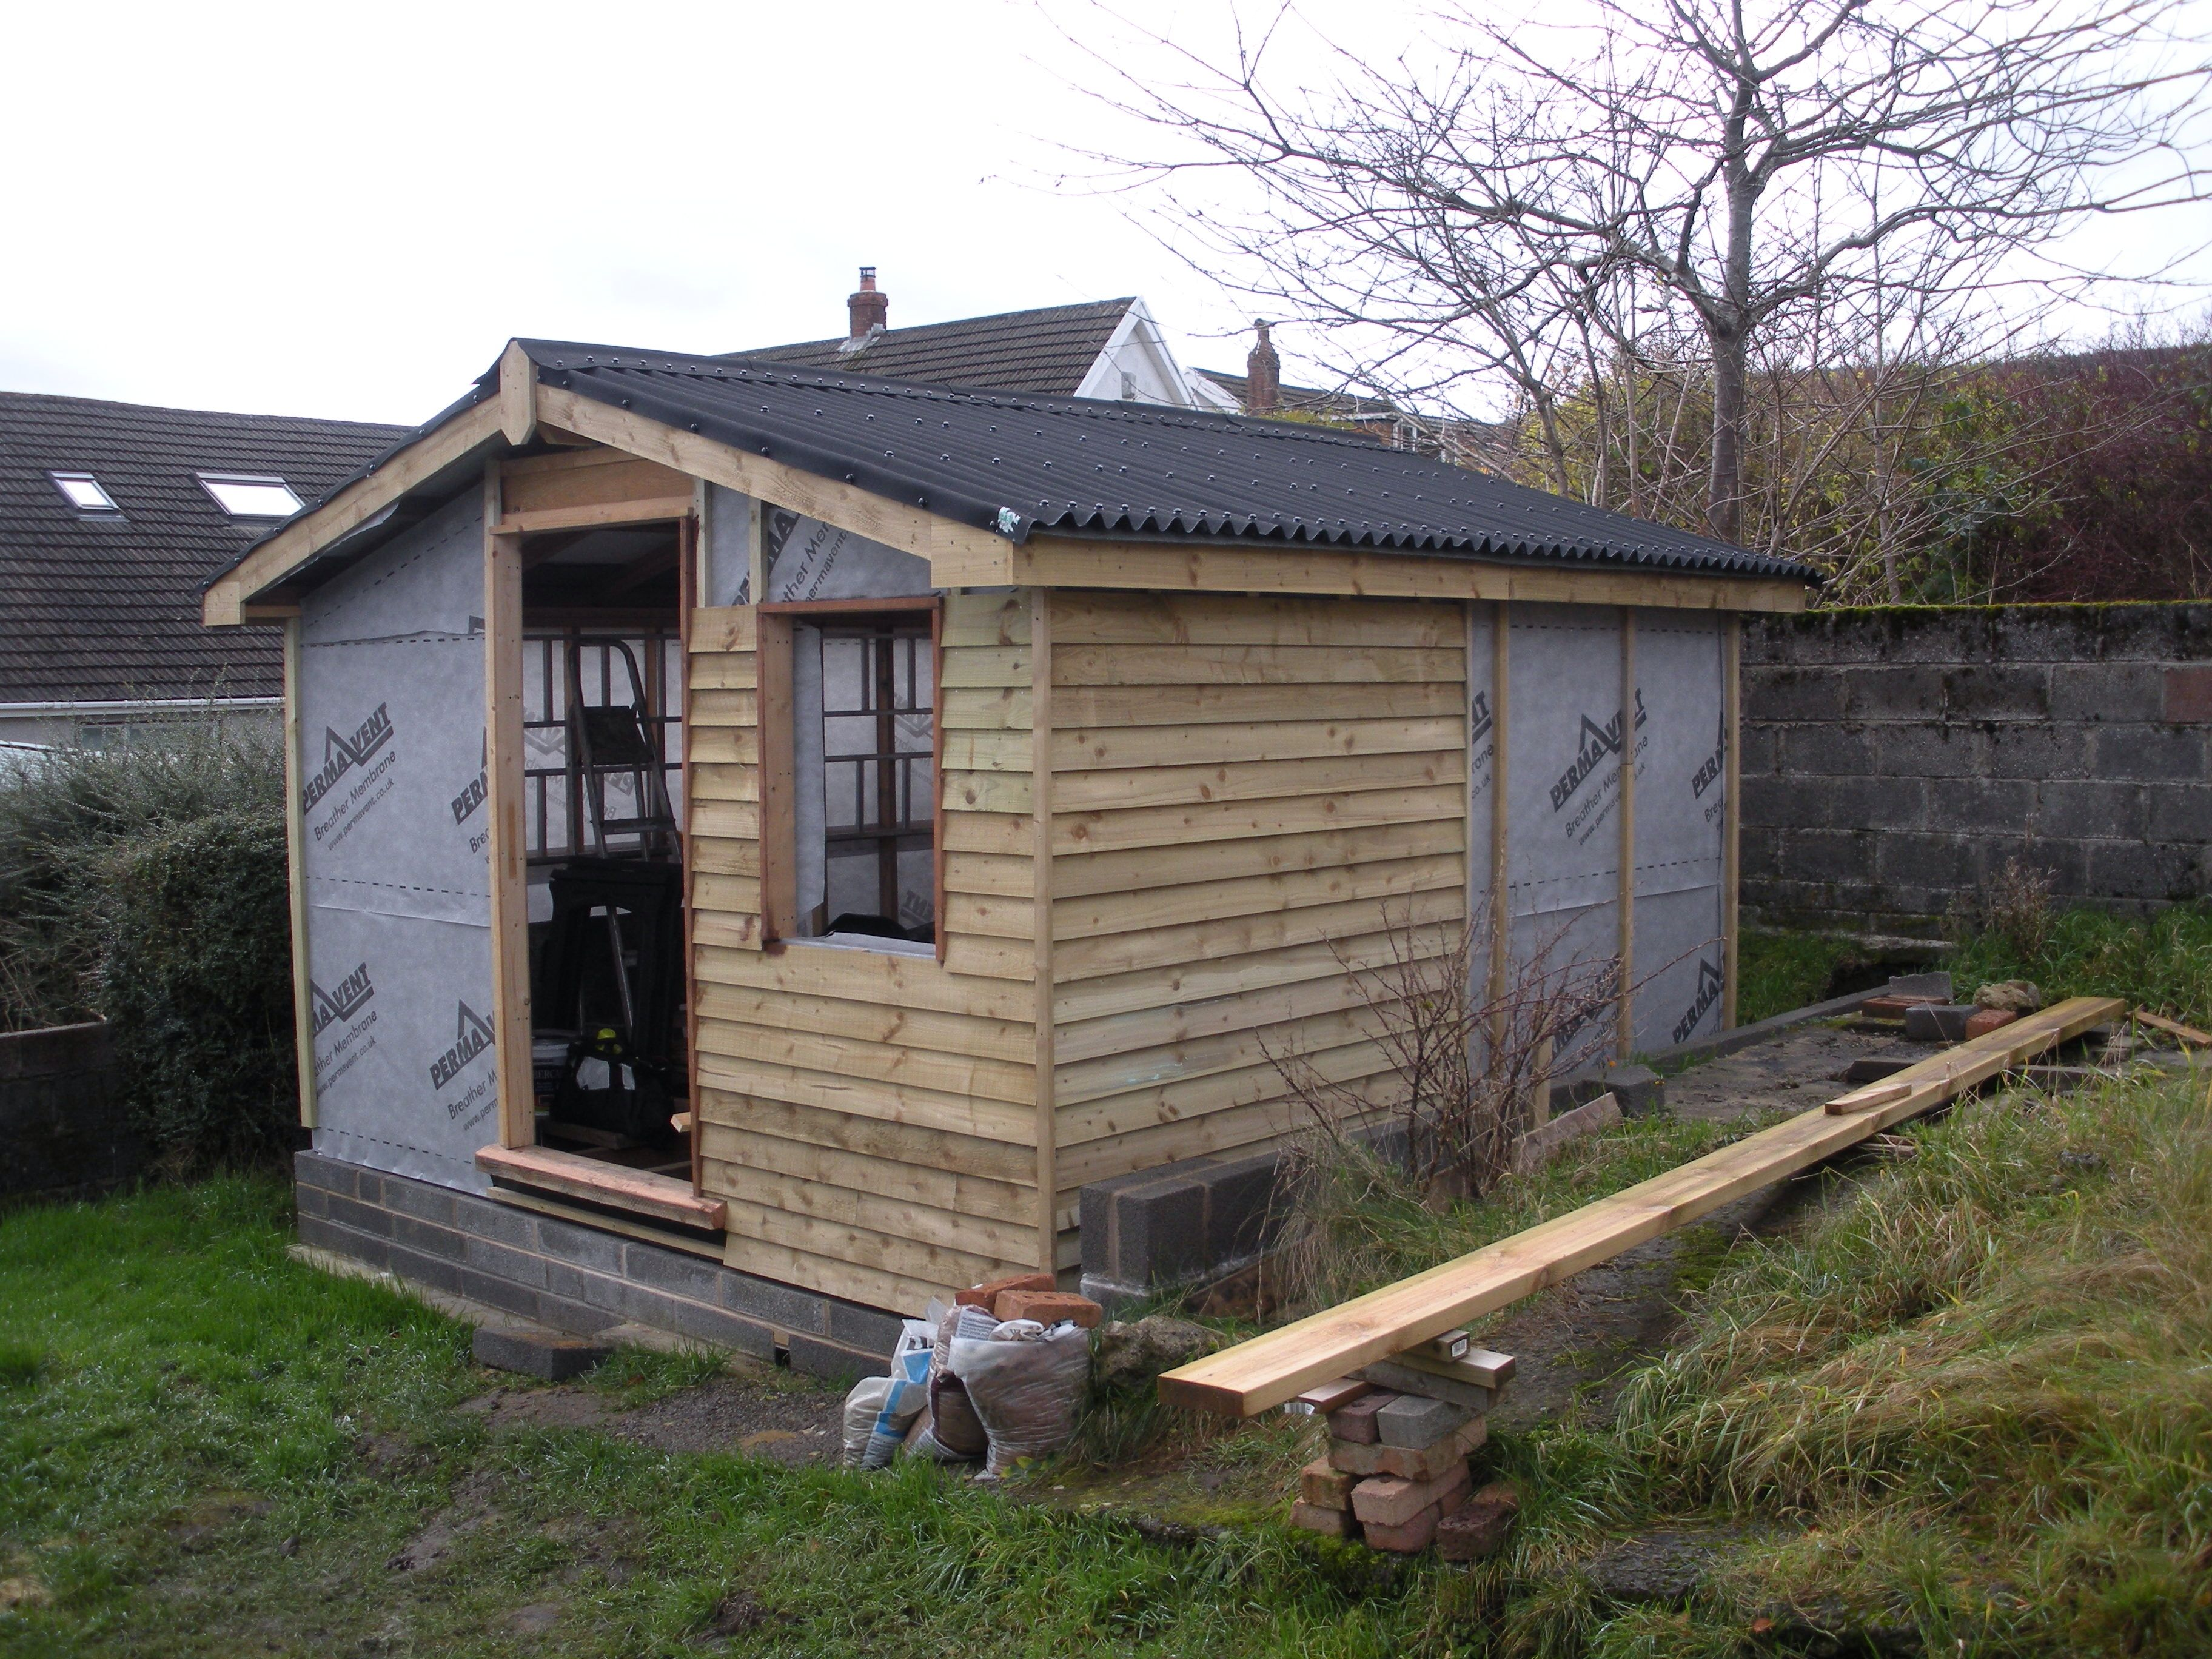 12x12 shed - Feather edge cladding frame